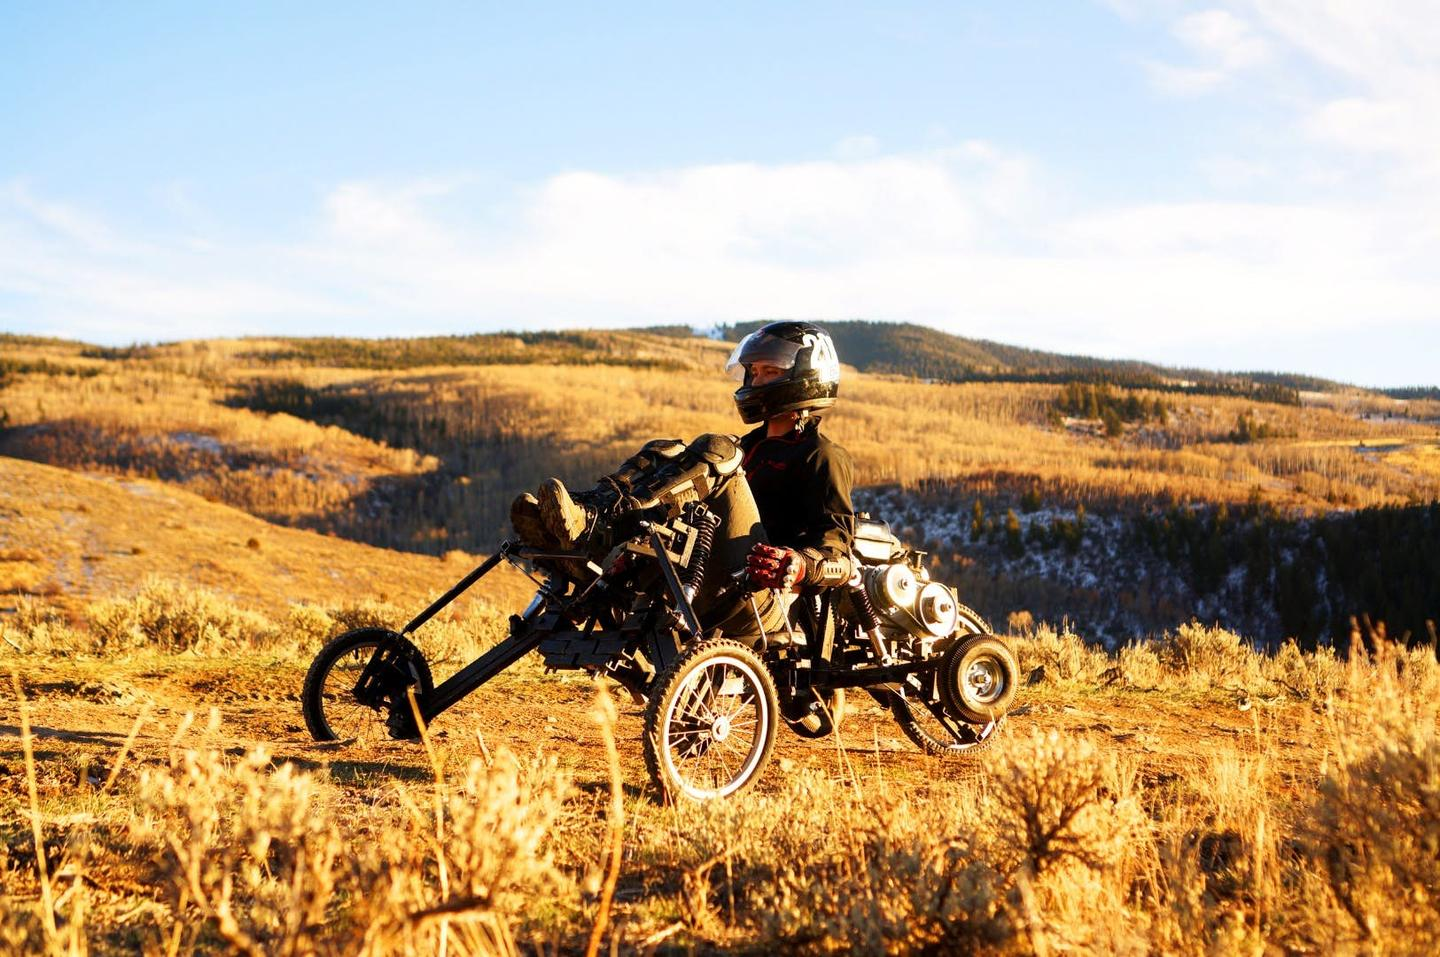 The Comanche recumbent trike